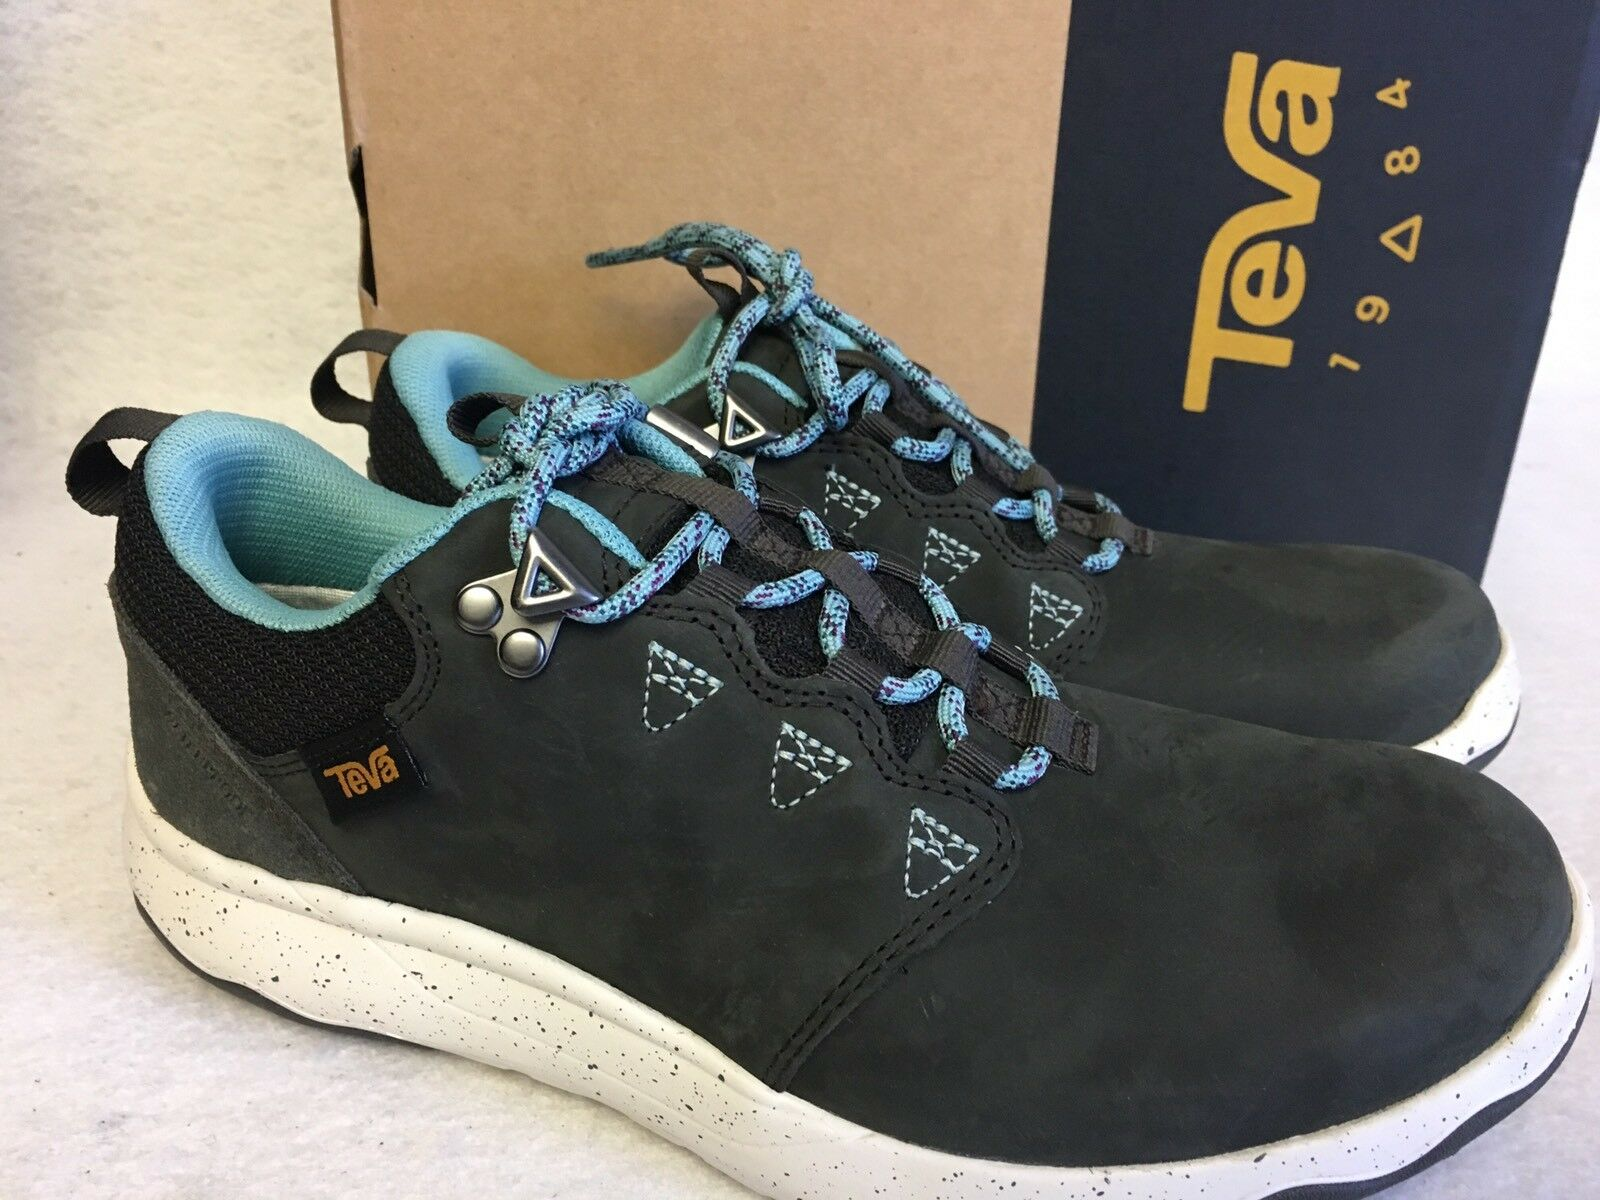 TEVA ARROWOOD LUX WP Black Olive LEATHER LEATHER LEATHER SNEAKER TRAIL HIKING SHOES sizes WOMENS 4fc105